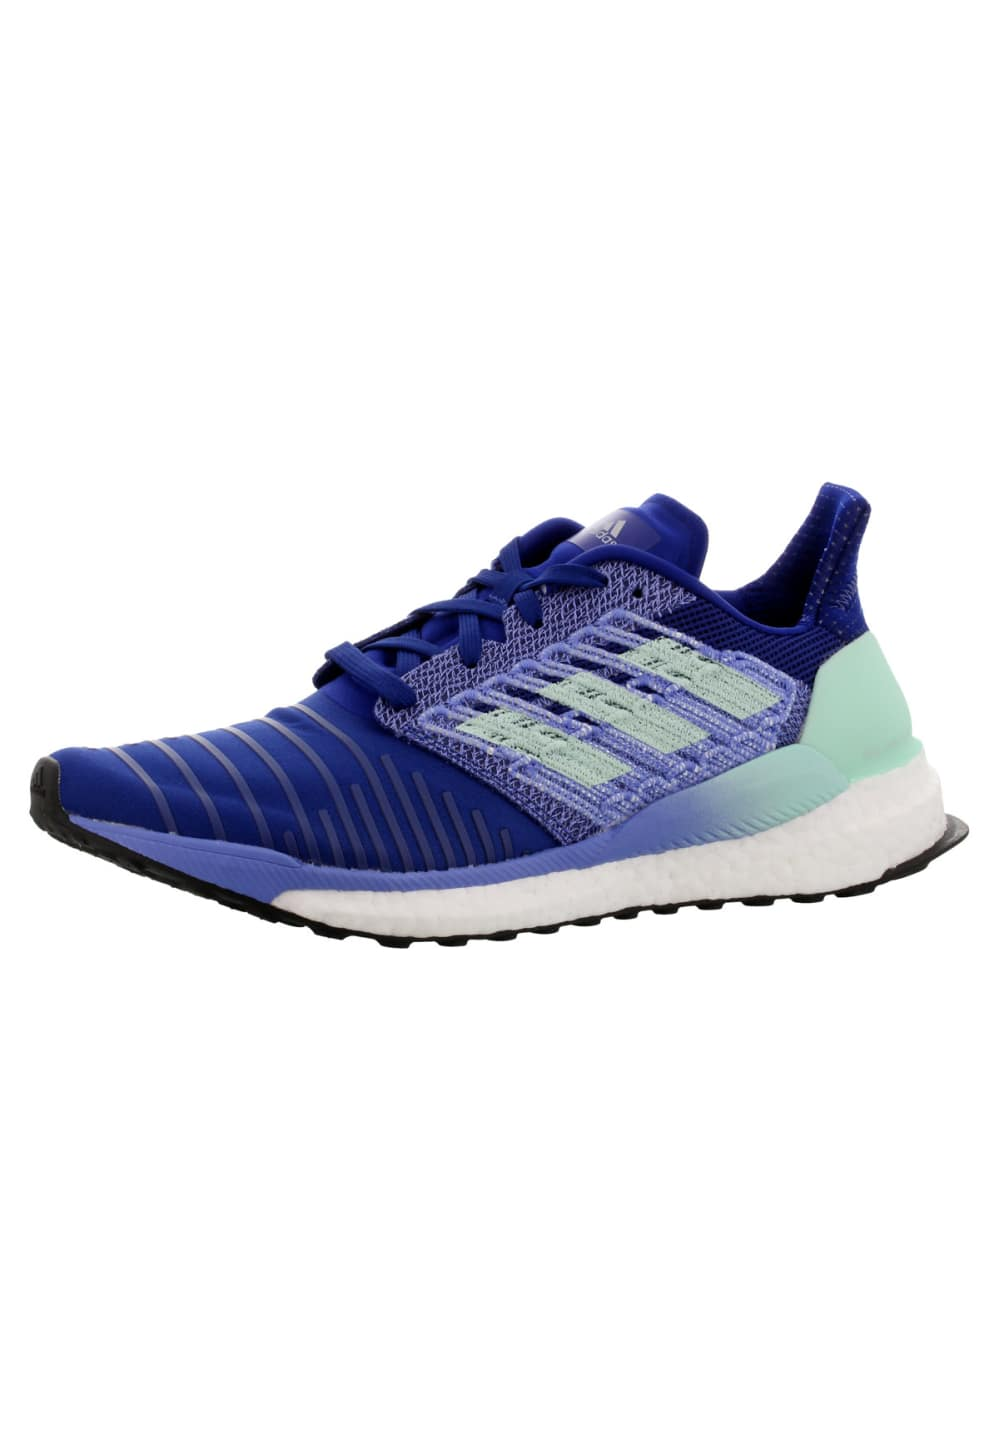 0dea9741f6922 adidas Solar Boost - Running shoes for Women - Blue